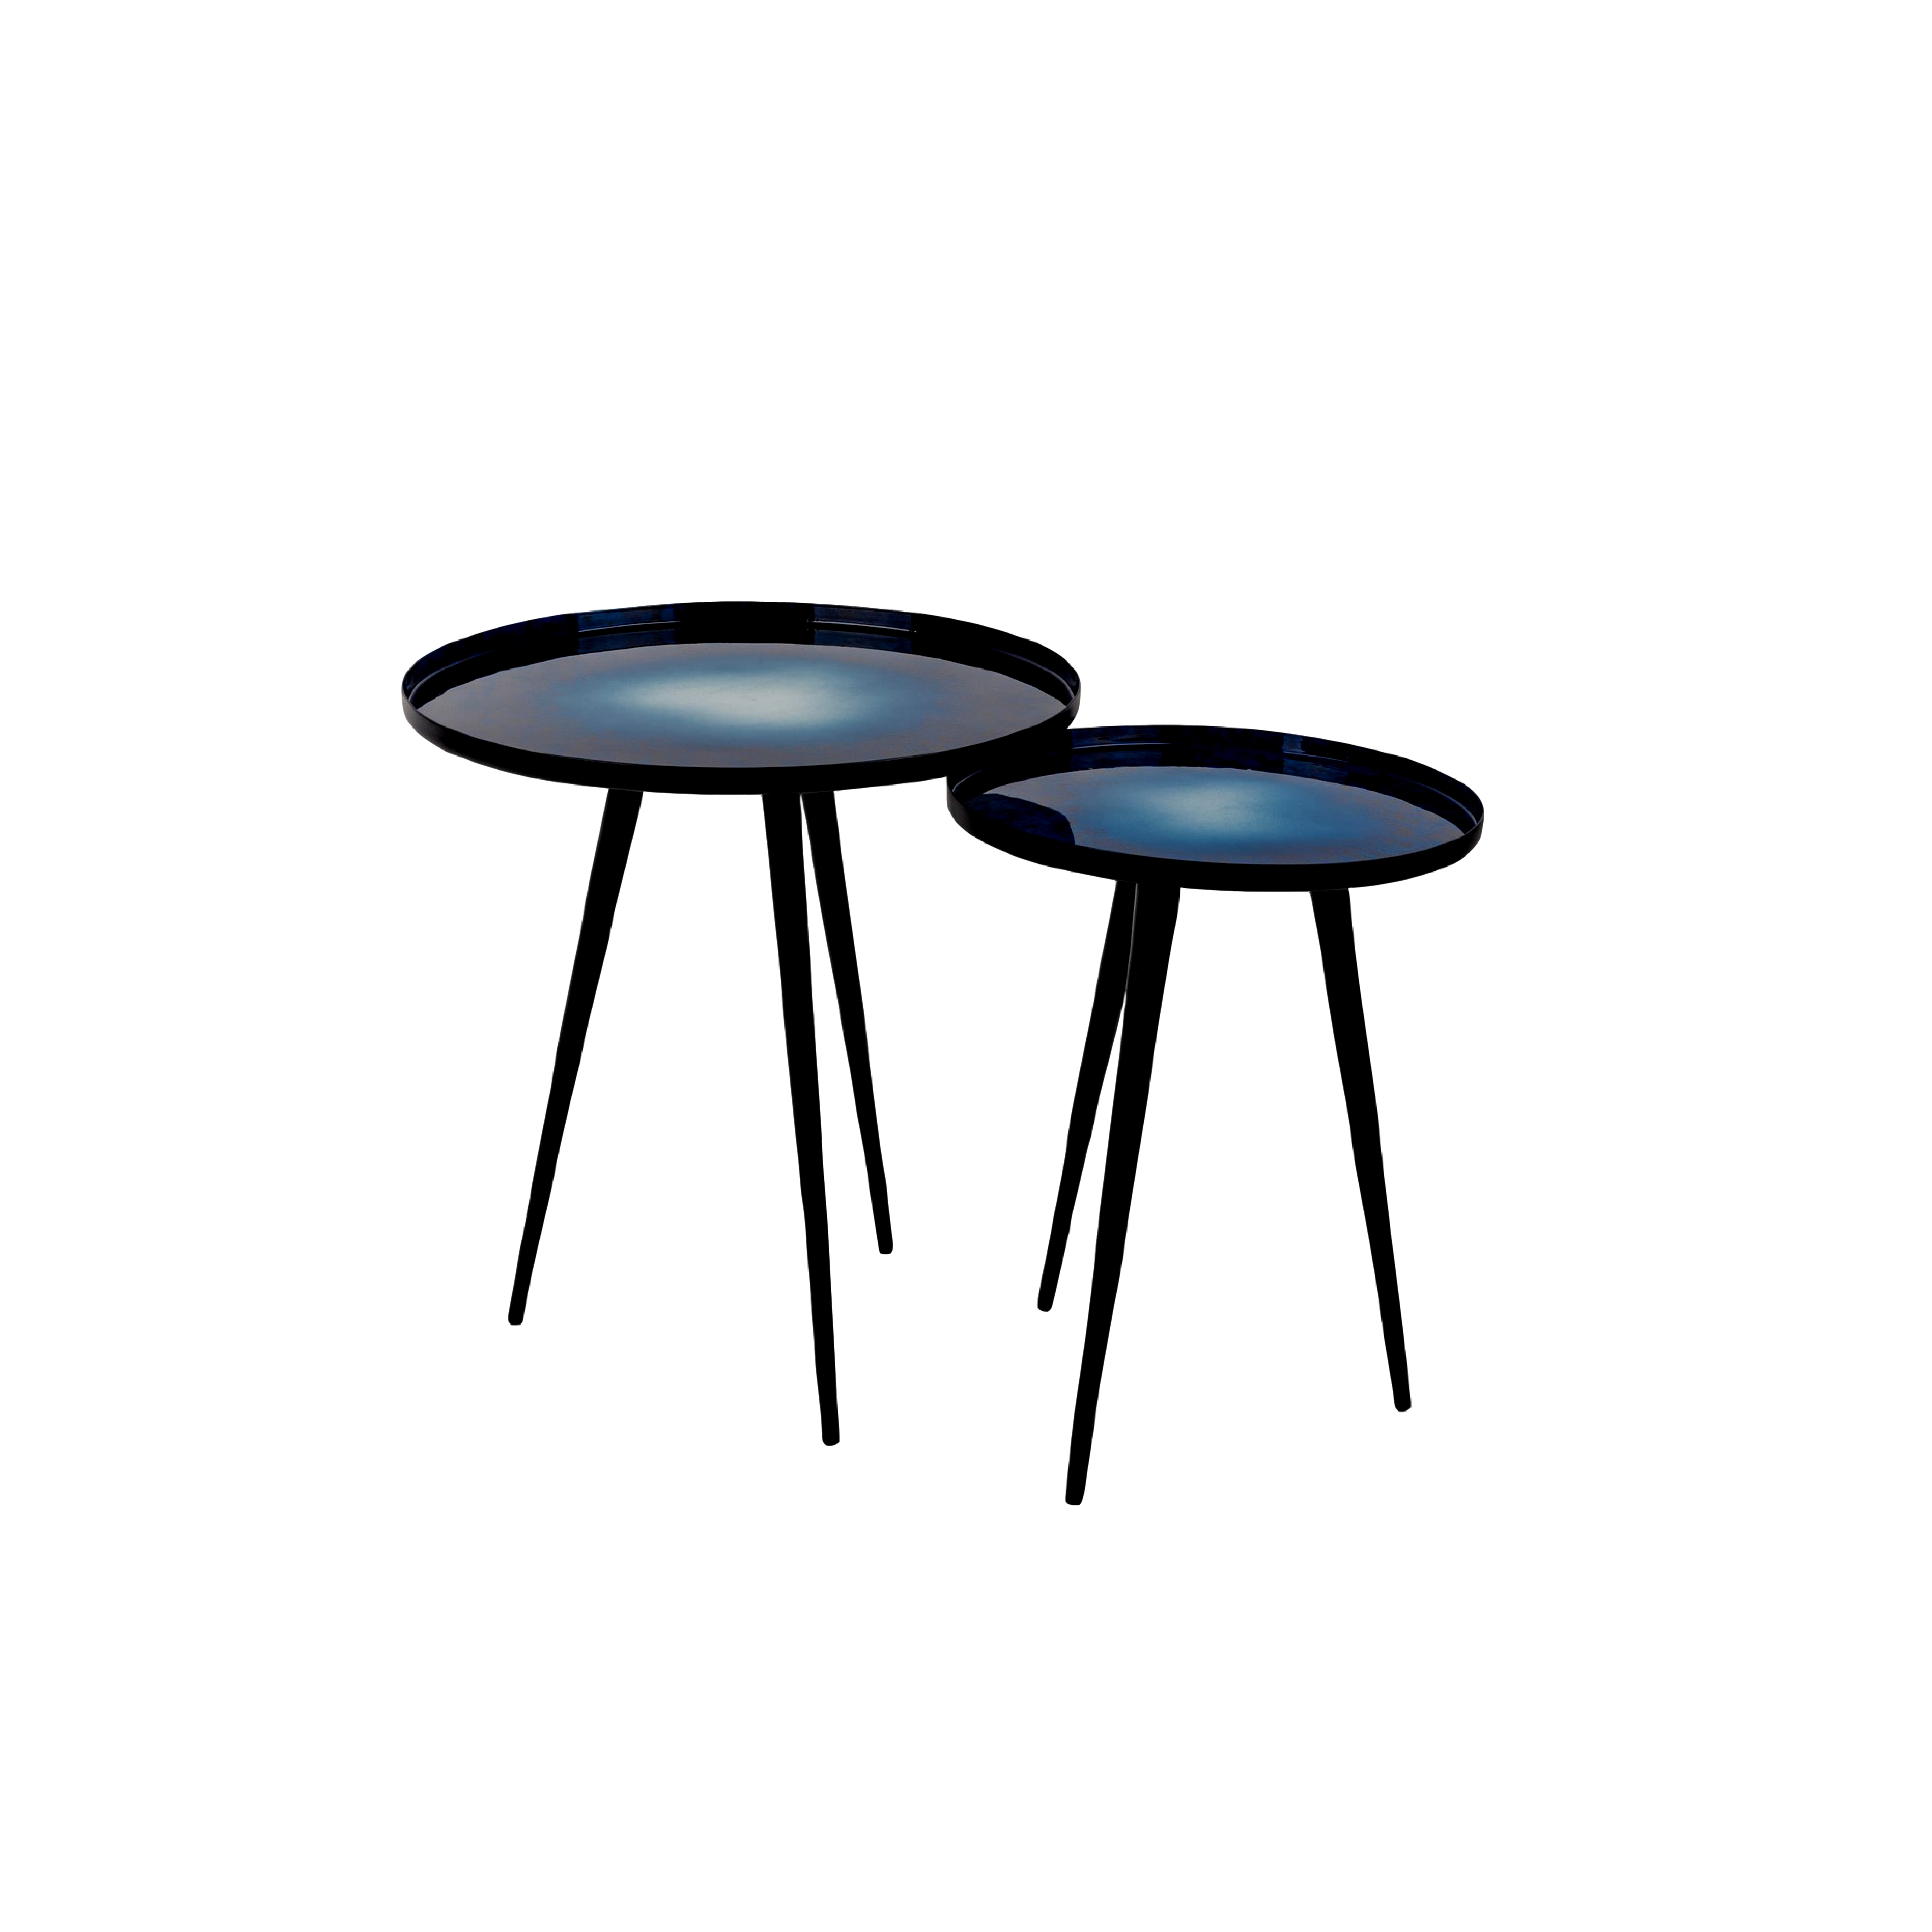 TABLES BASSES FLOW ZUIVER X 2 SUR 3SUISSES.FR – 189€